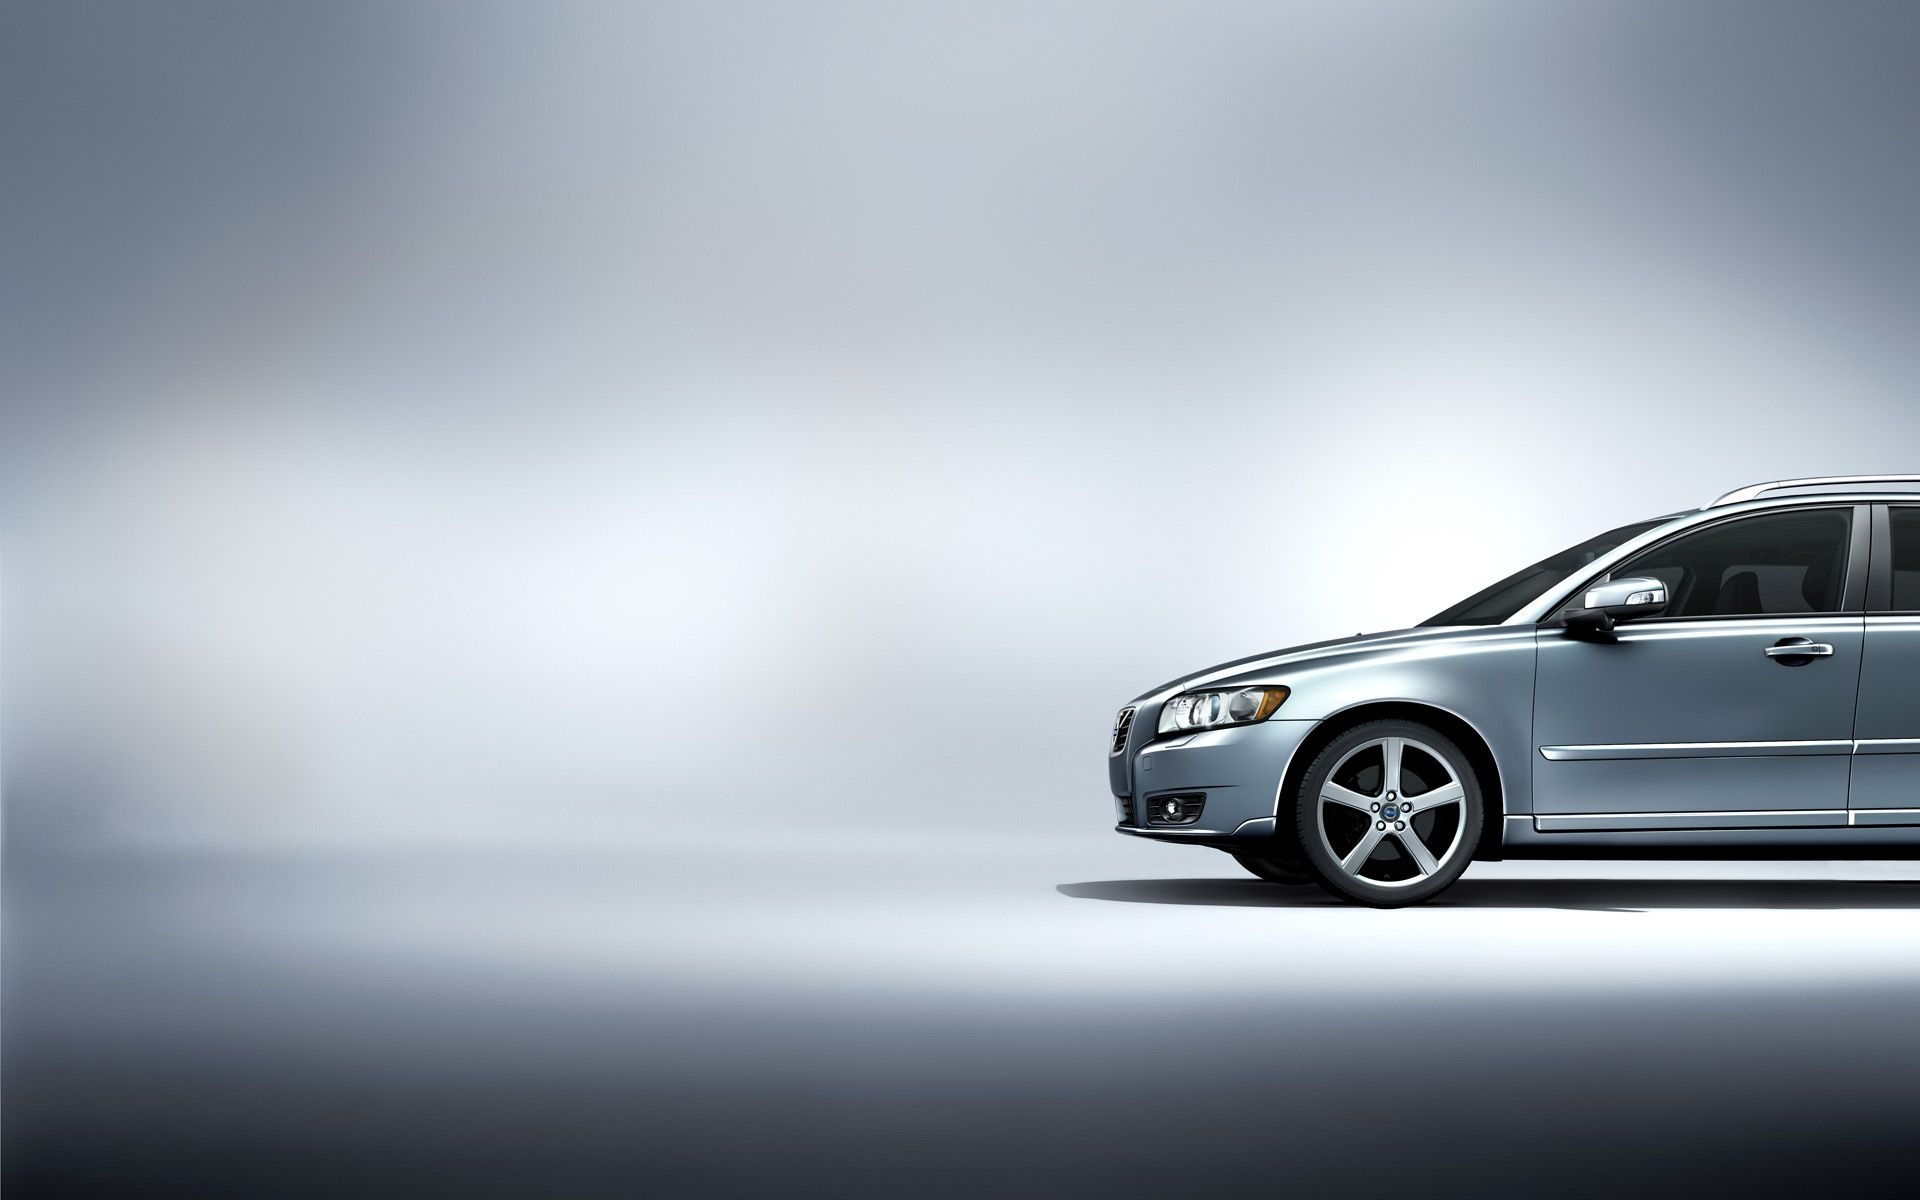 Wallpaper Car Background Hd Pulse On Cars Image For Mobile Grey Car Wallpapers Car Backgrounds Volvo